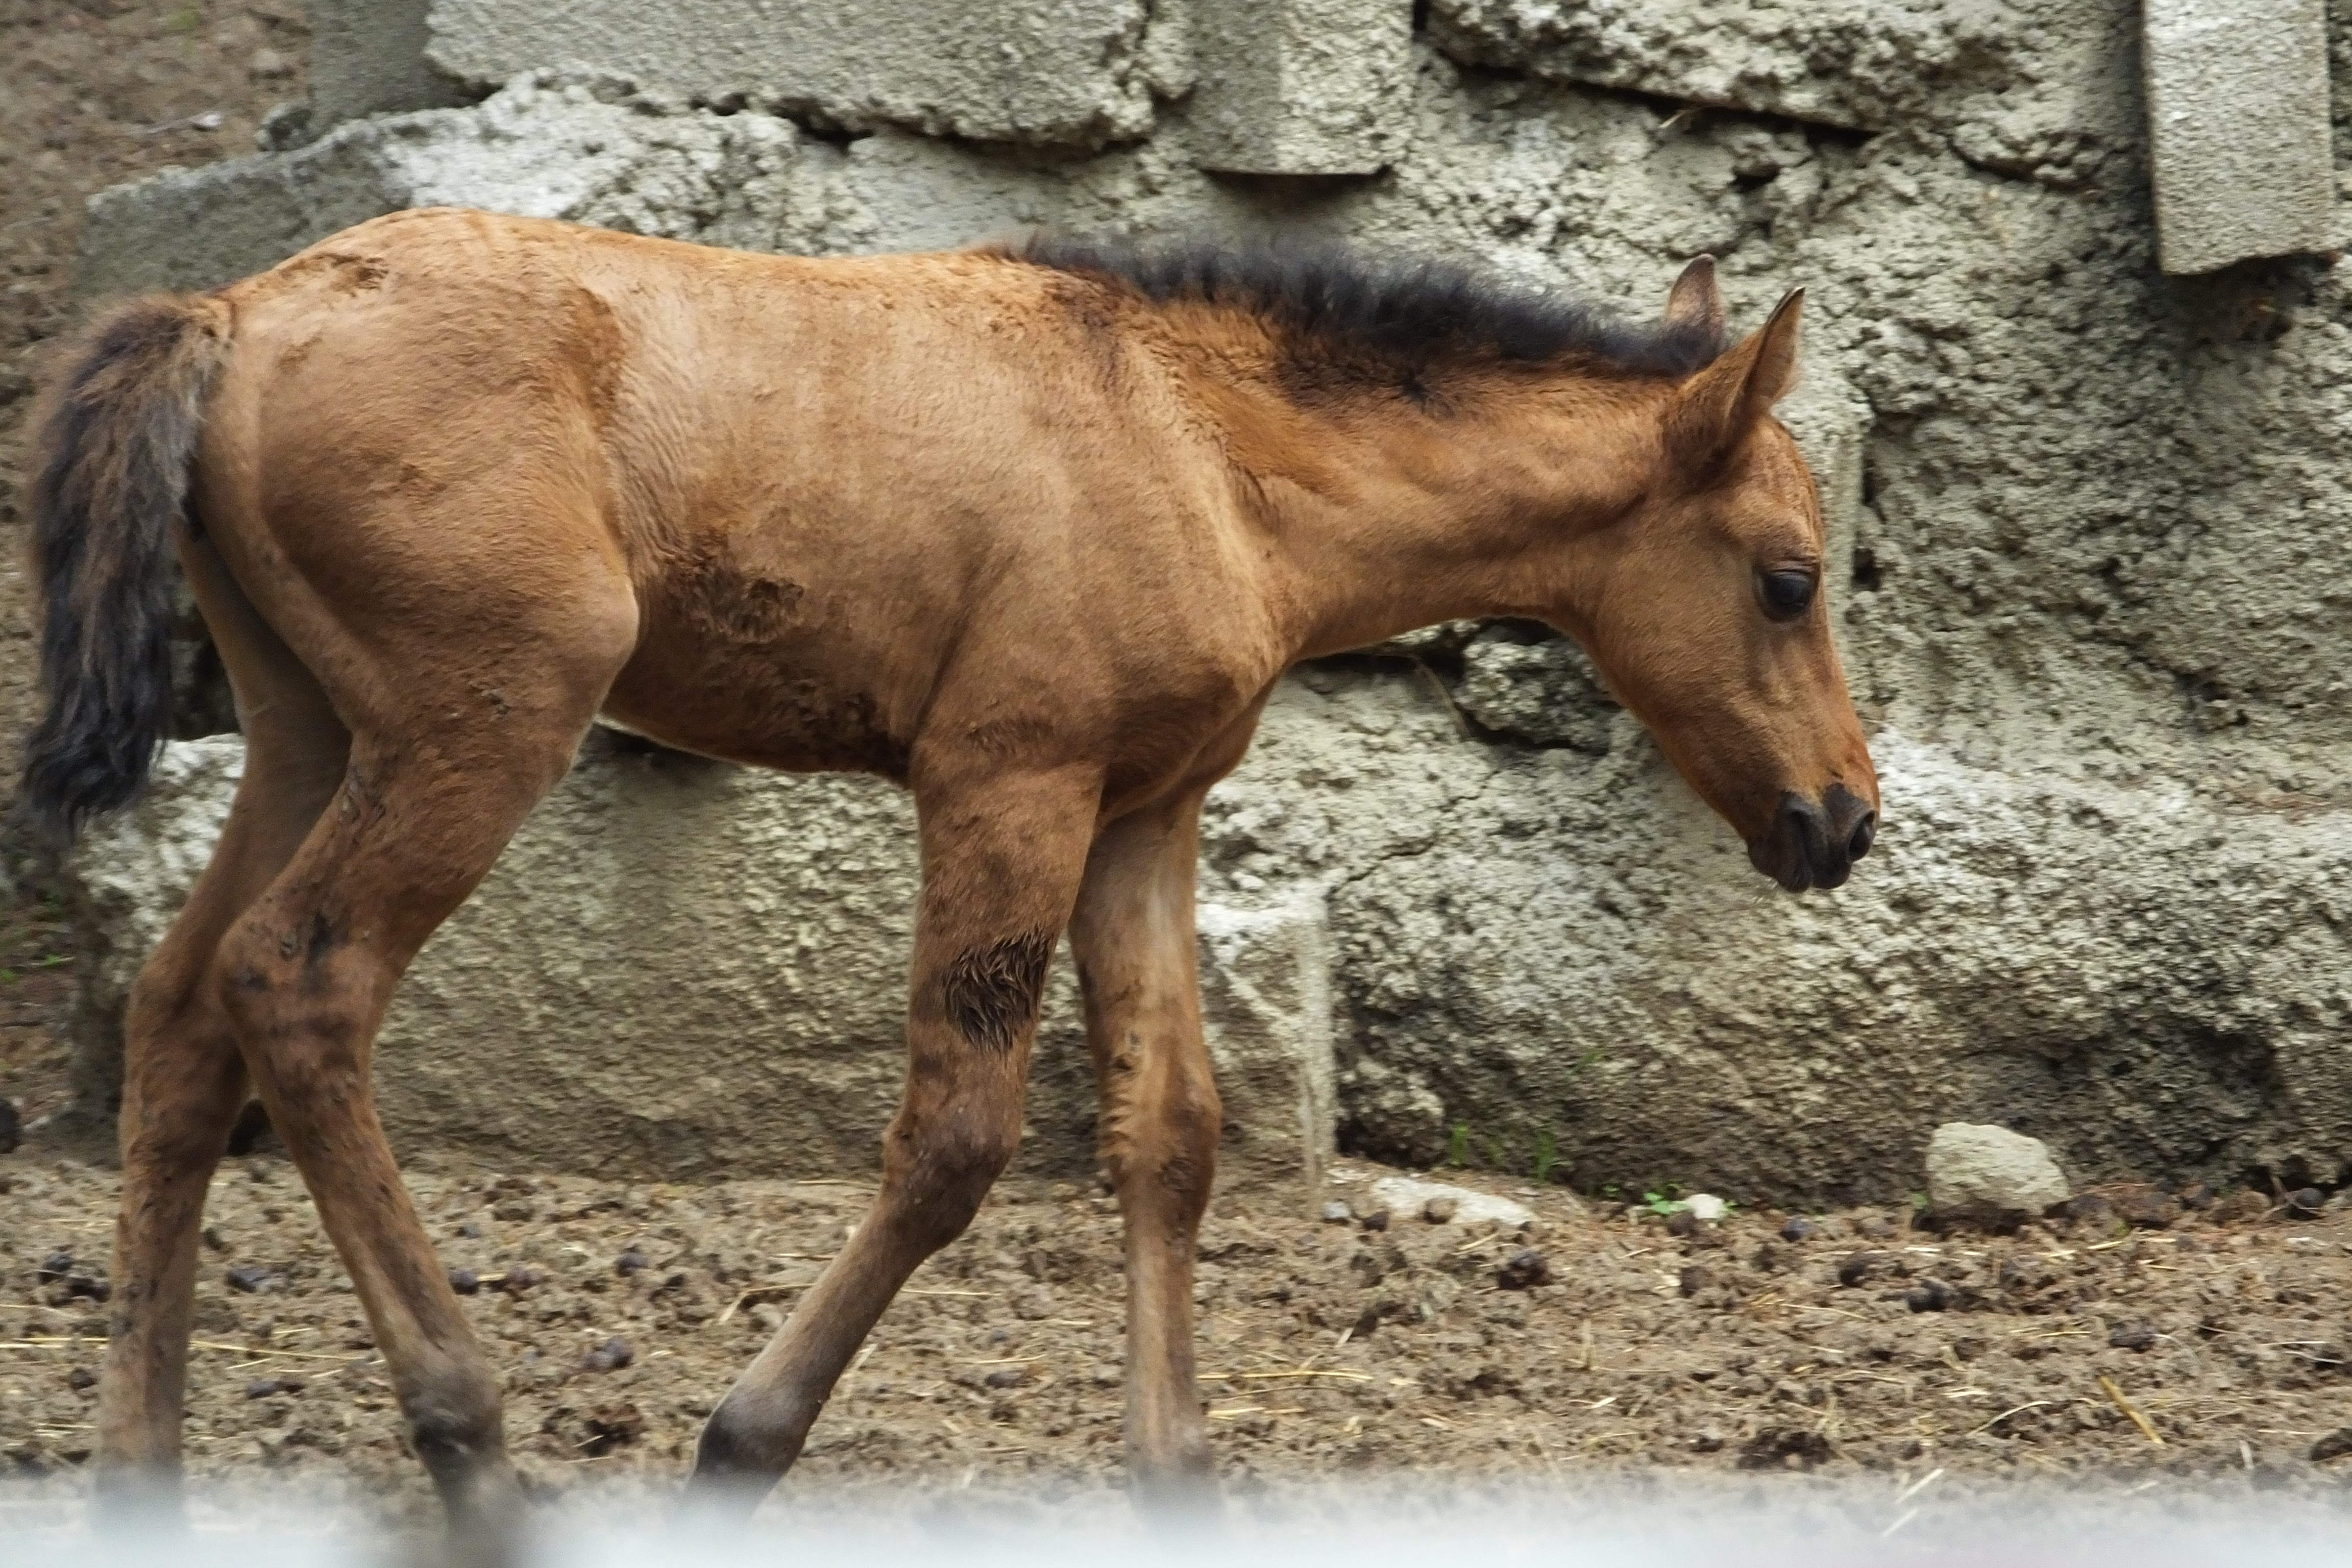 What is a foal   SIMILAR BUT DIFFERENT IN THE ANIMAL KINGDOM